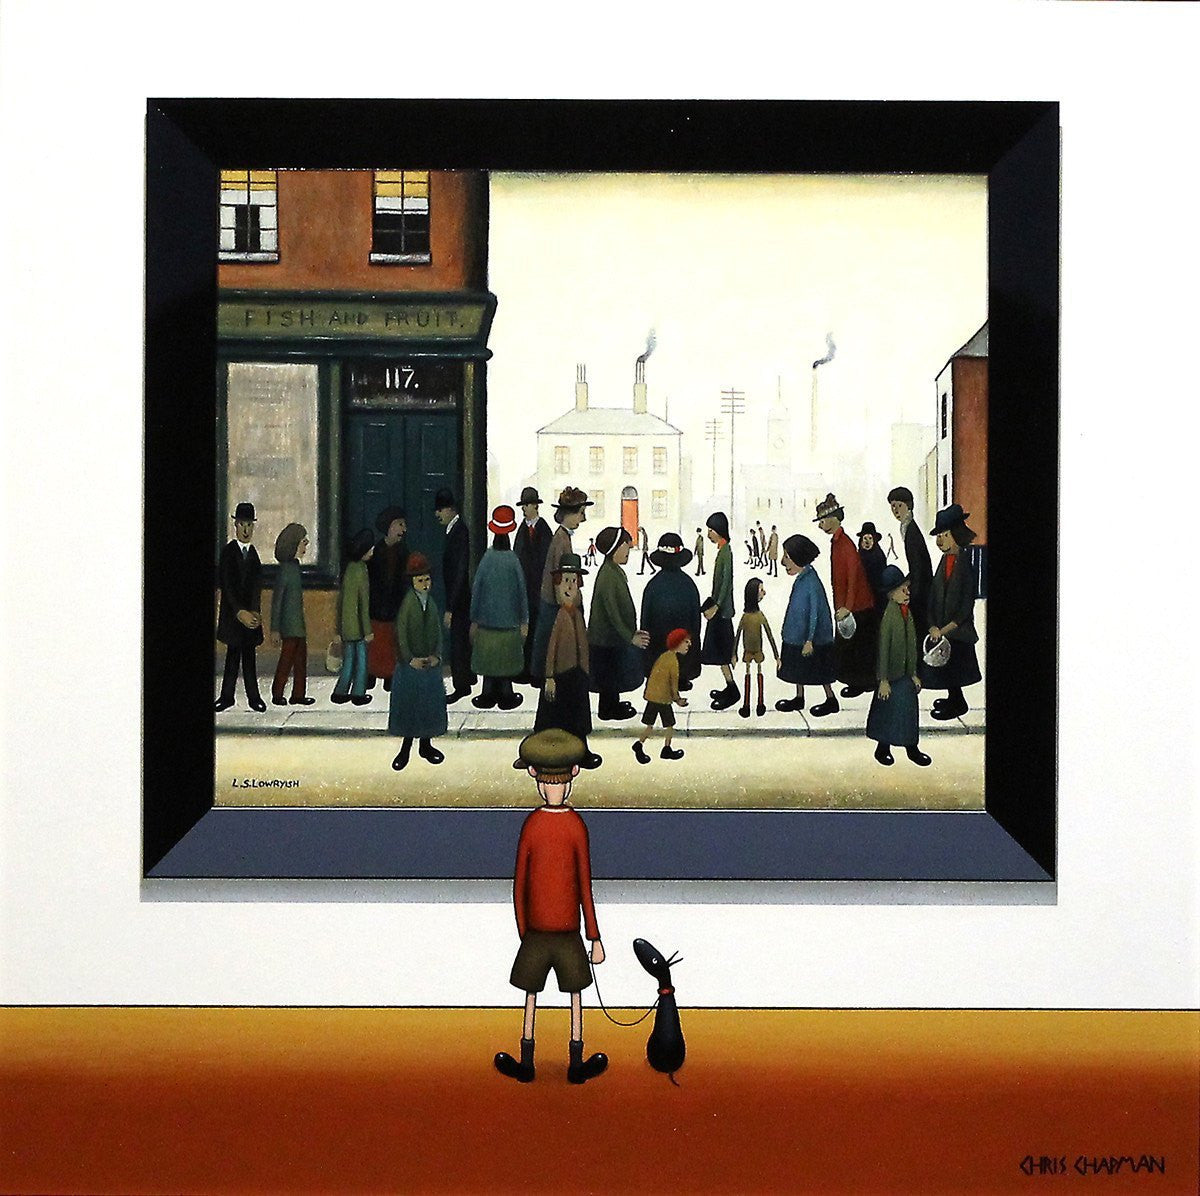 Shoppers - SOLD Chris Chapman